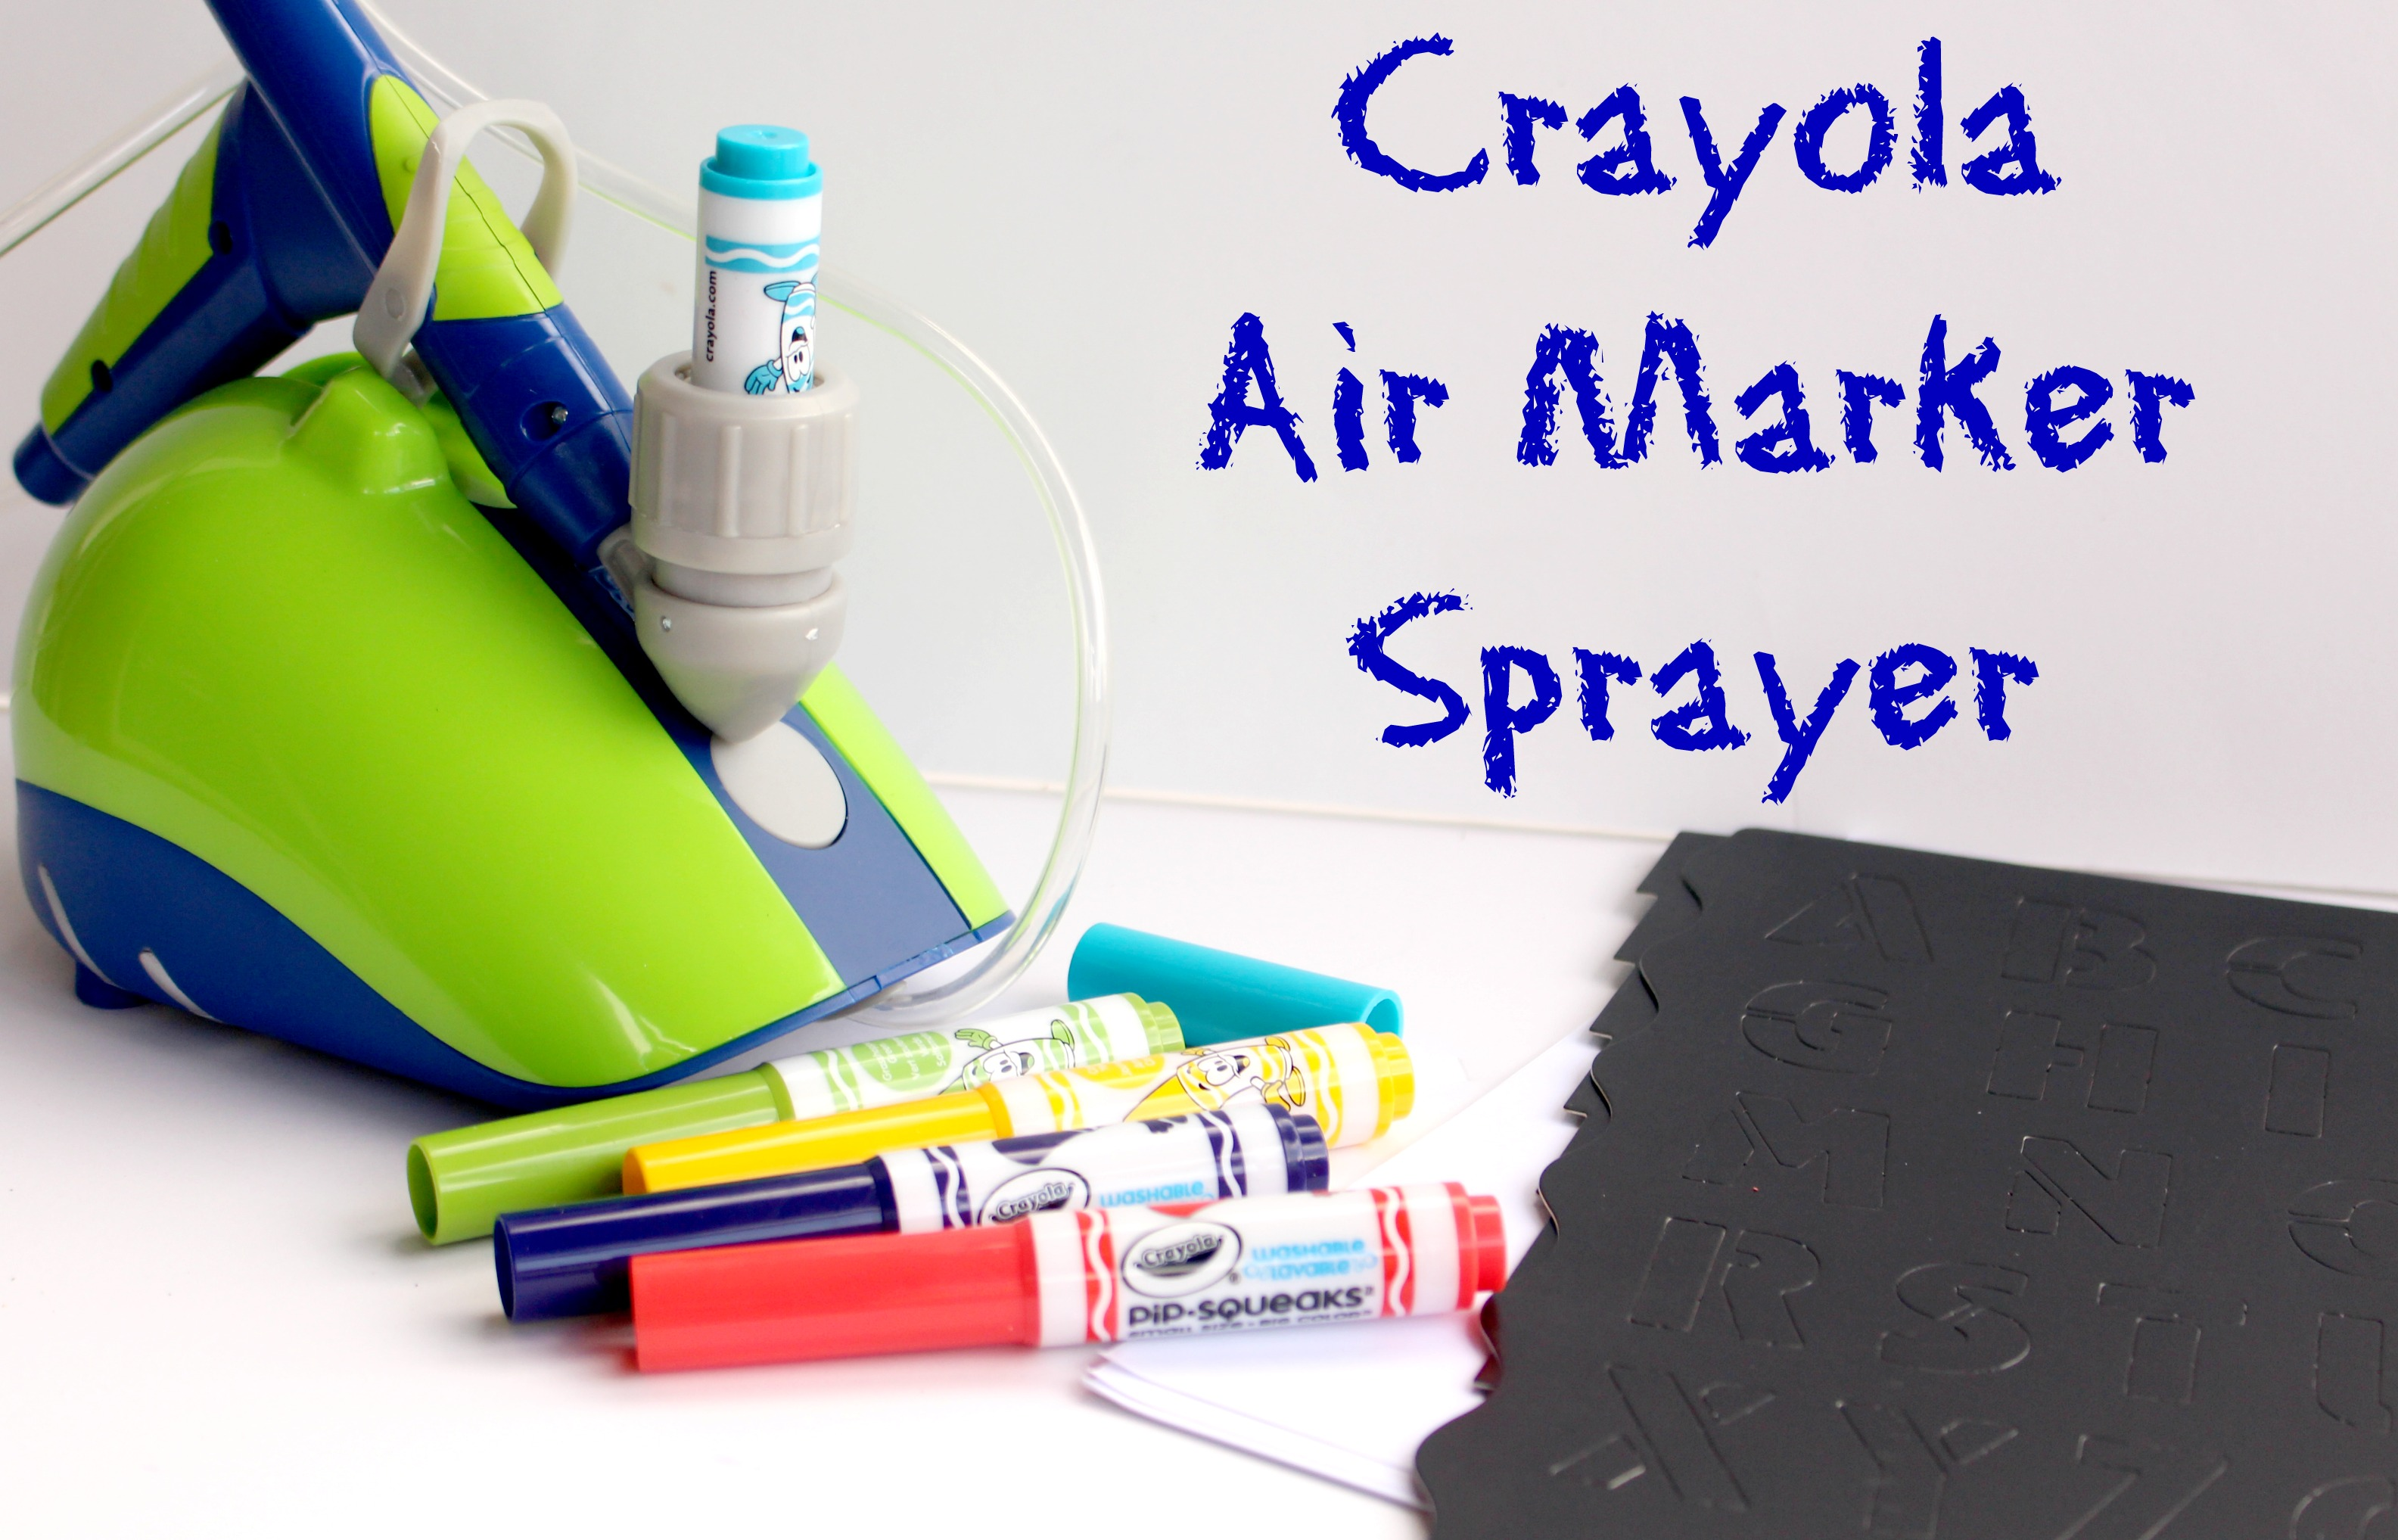 crayola-air-sprayer